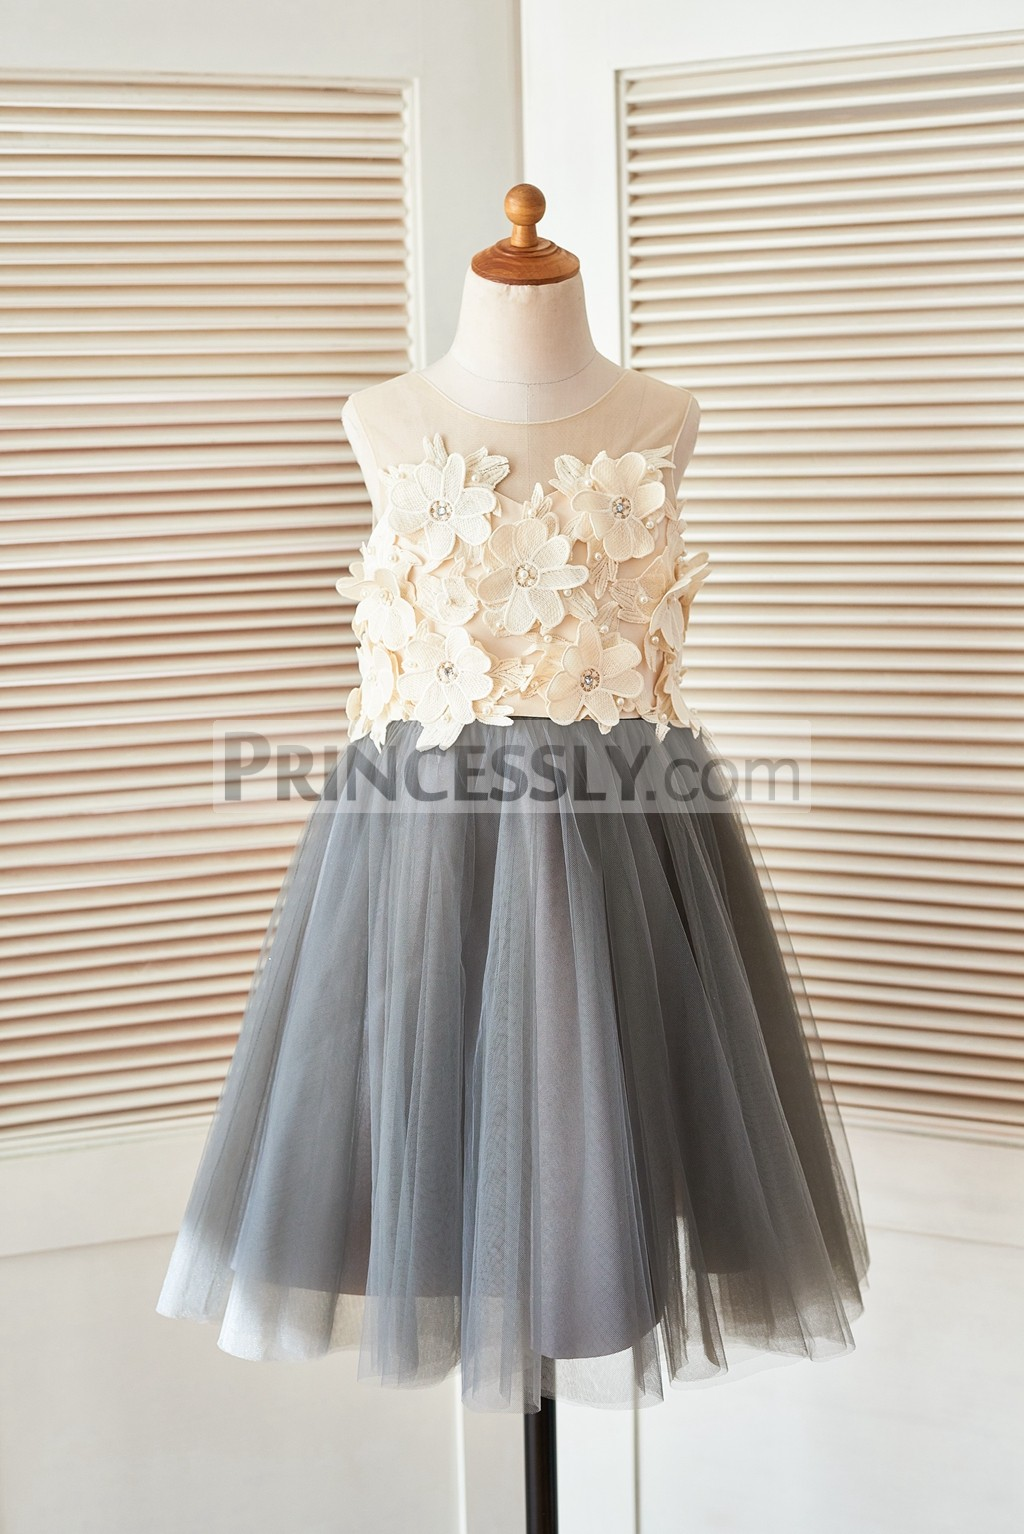 Princessly.com-K1003400 Sheer Illusion Neck Gray Tulle Wedding Flower Girl Dress with Champagne 3D Flowers-31